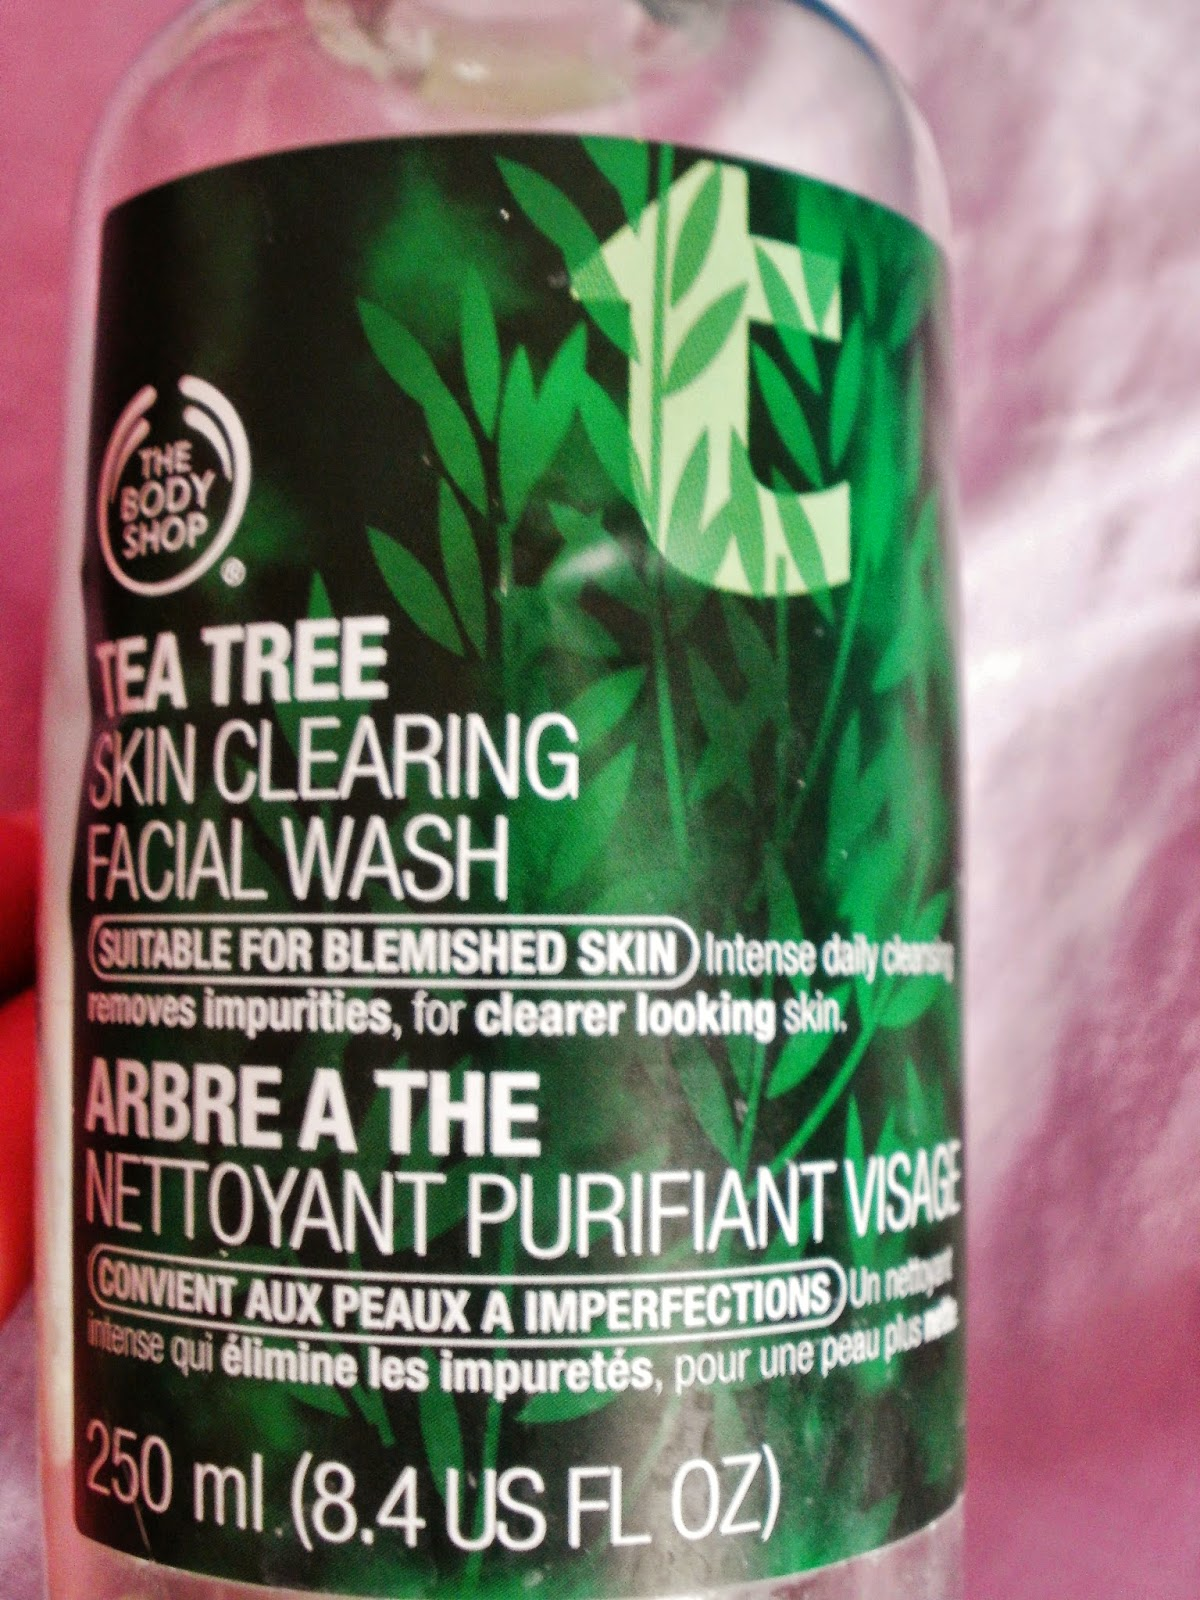 body shop tea tree facial wash